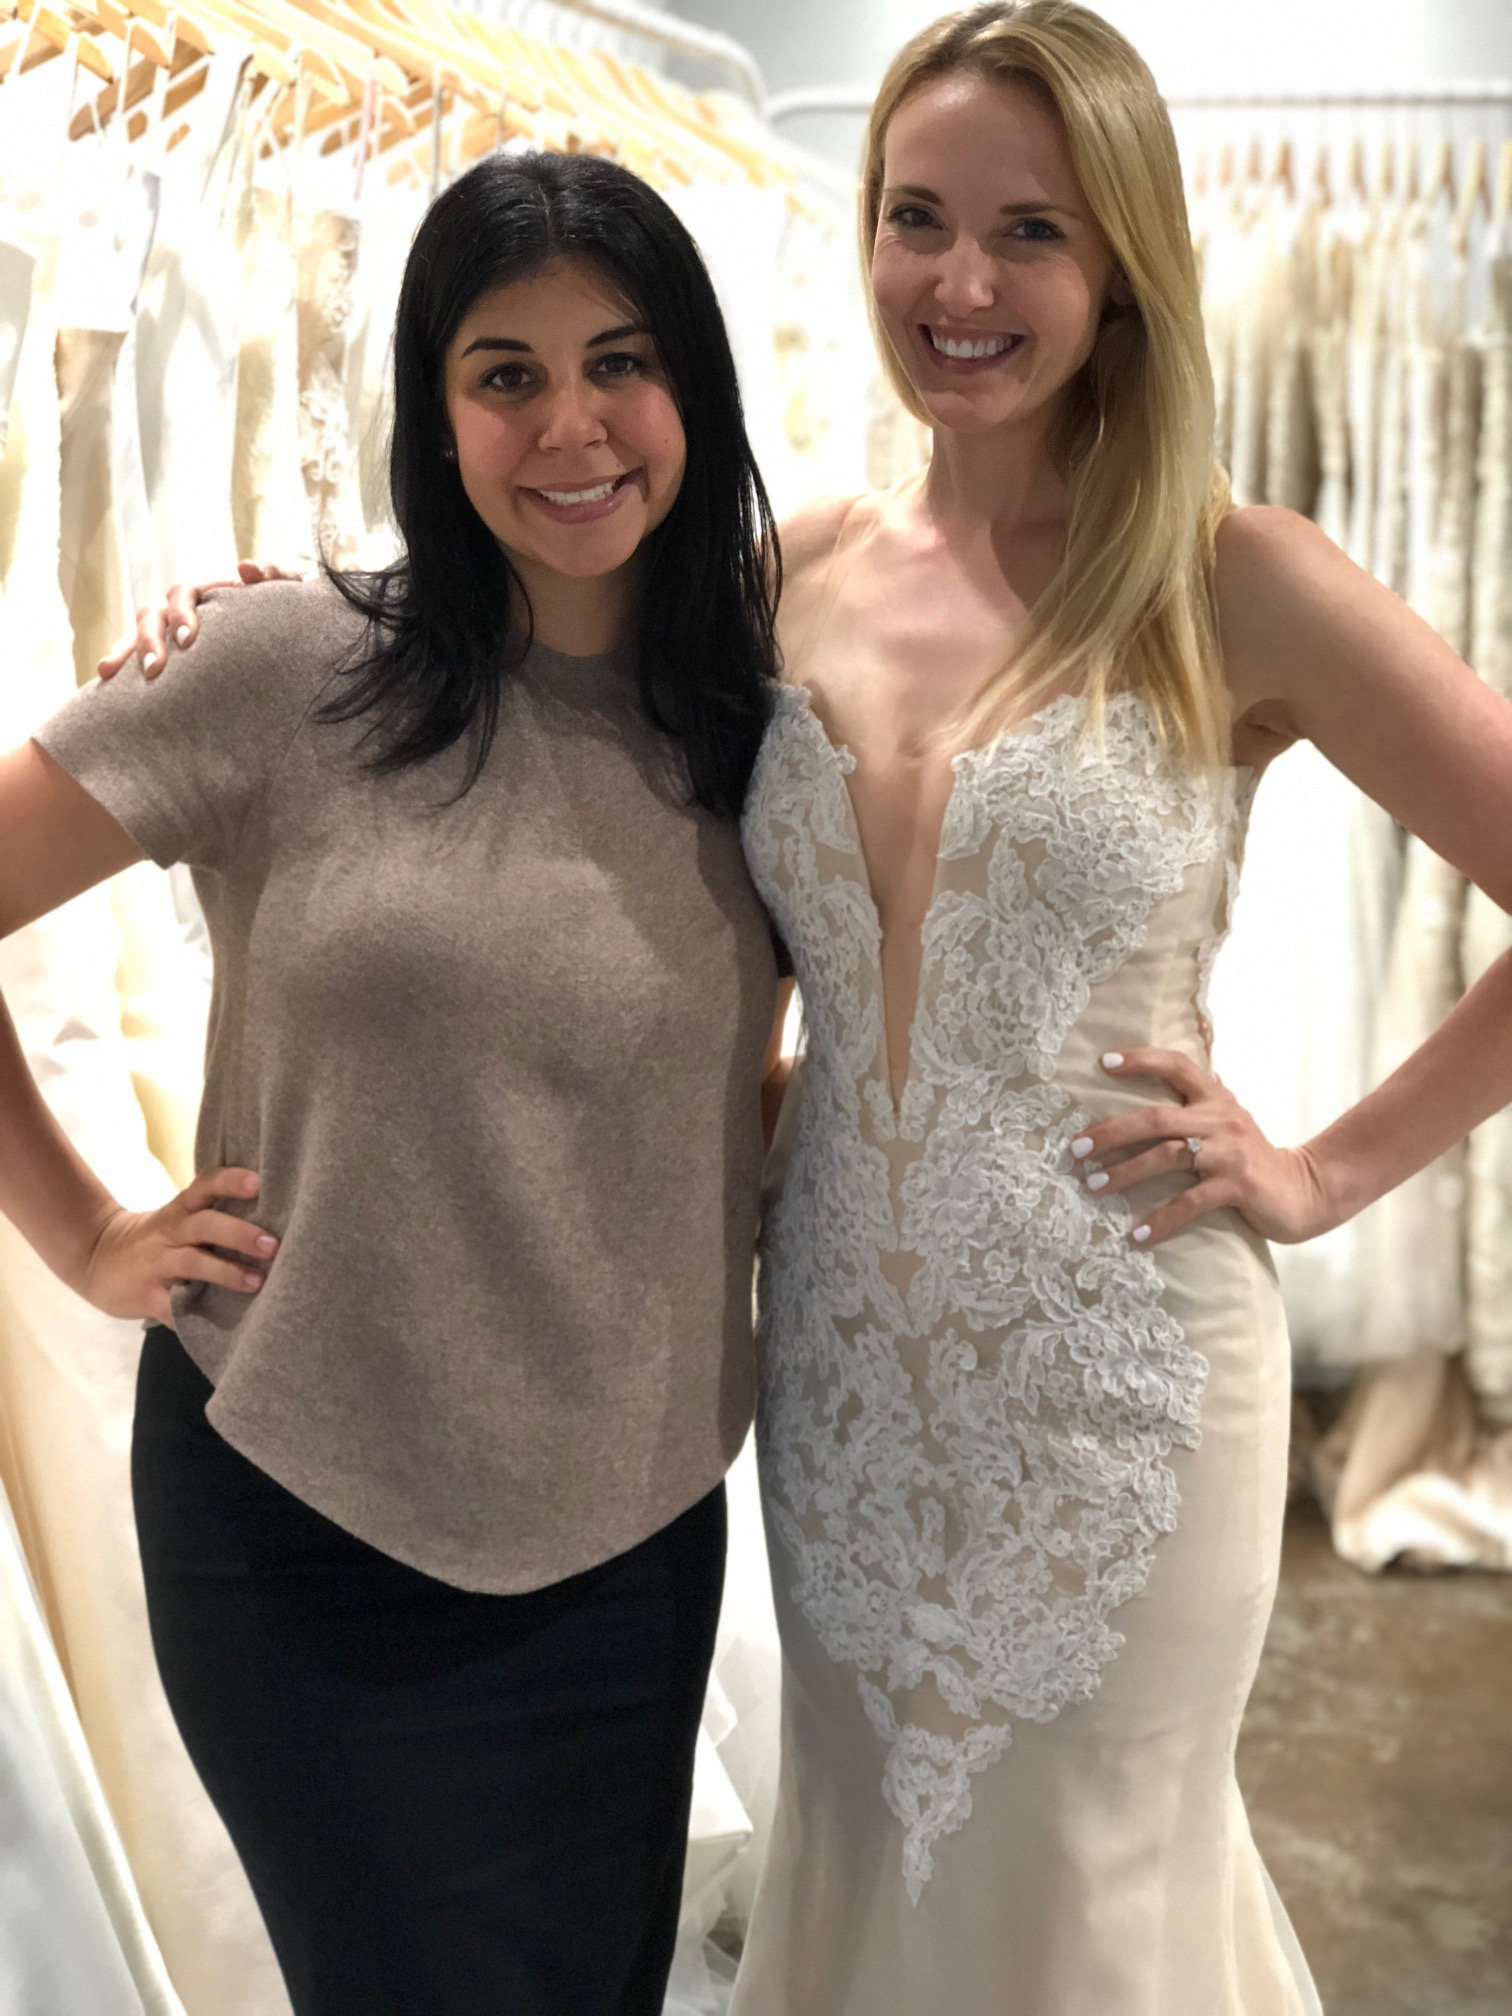 tali with kari during a bridal gown fitting